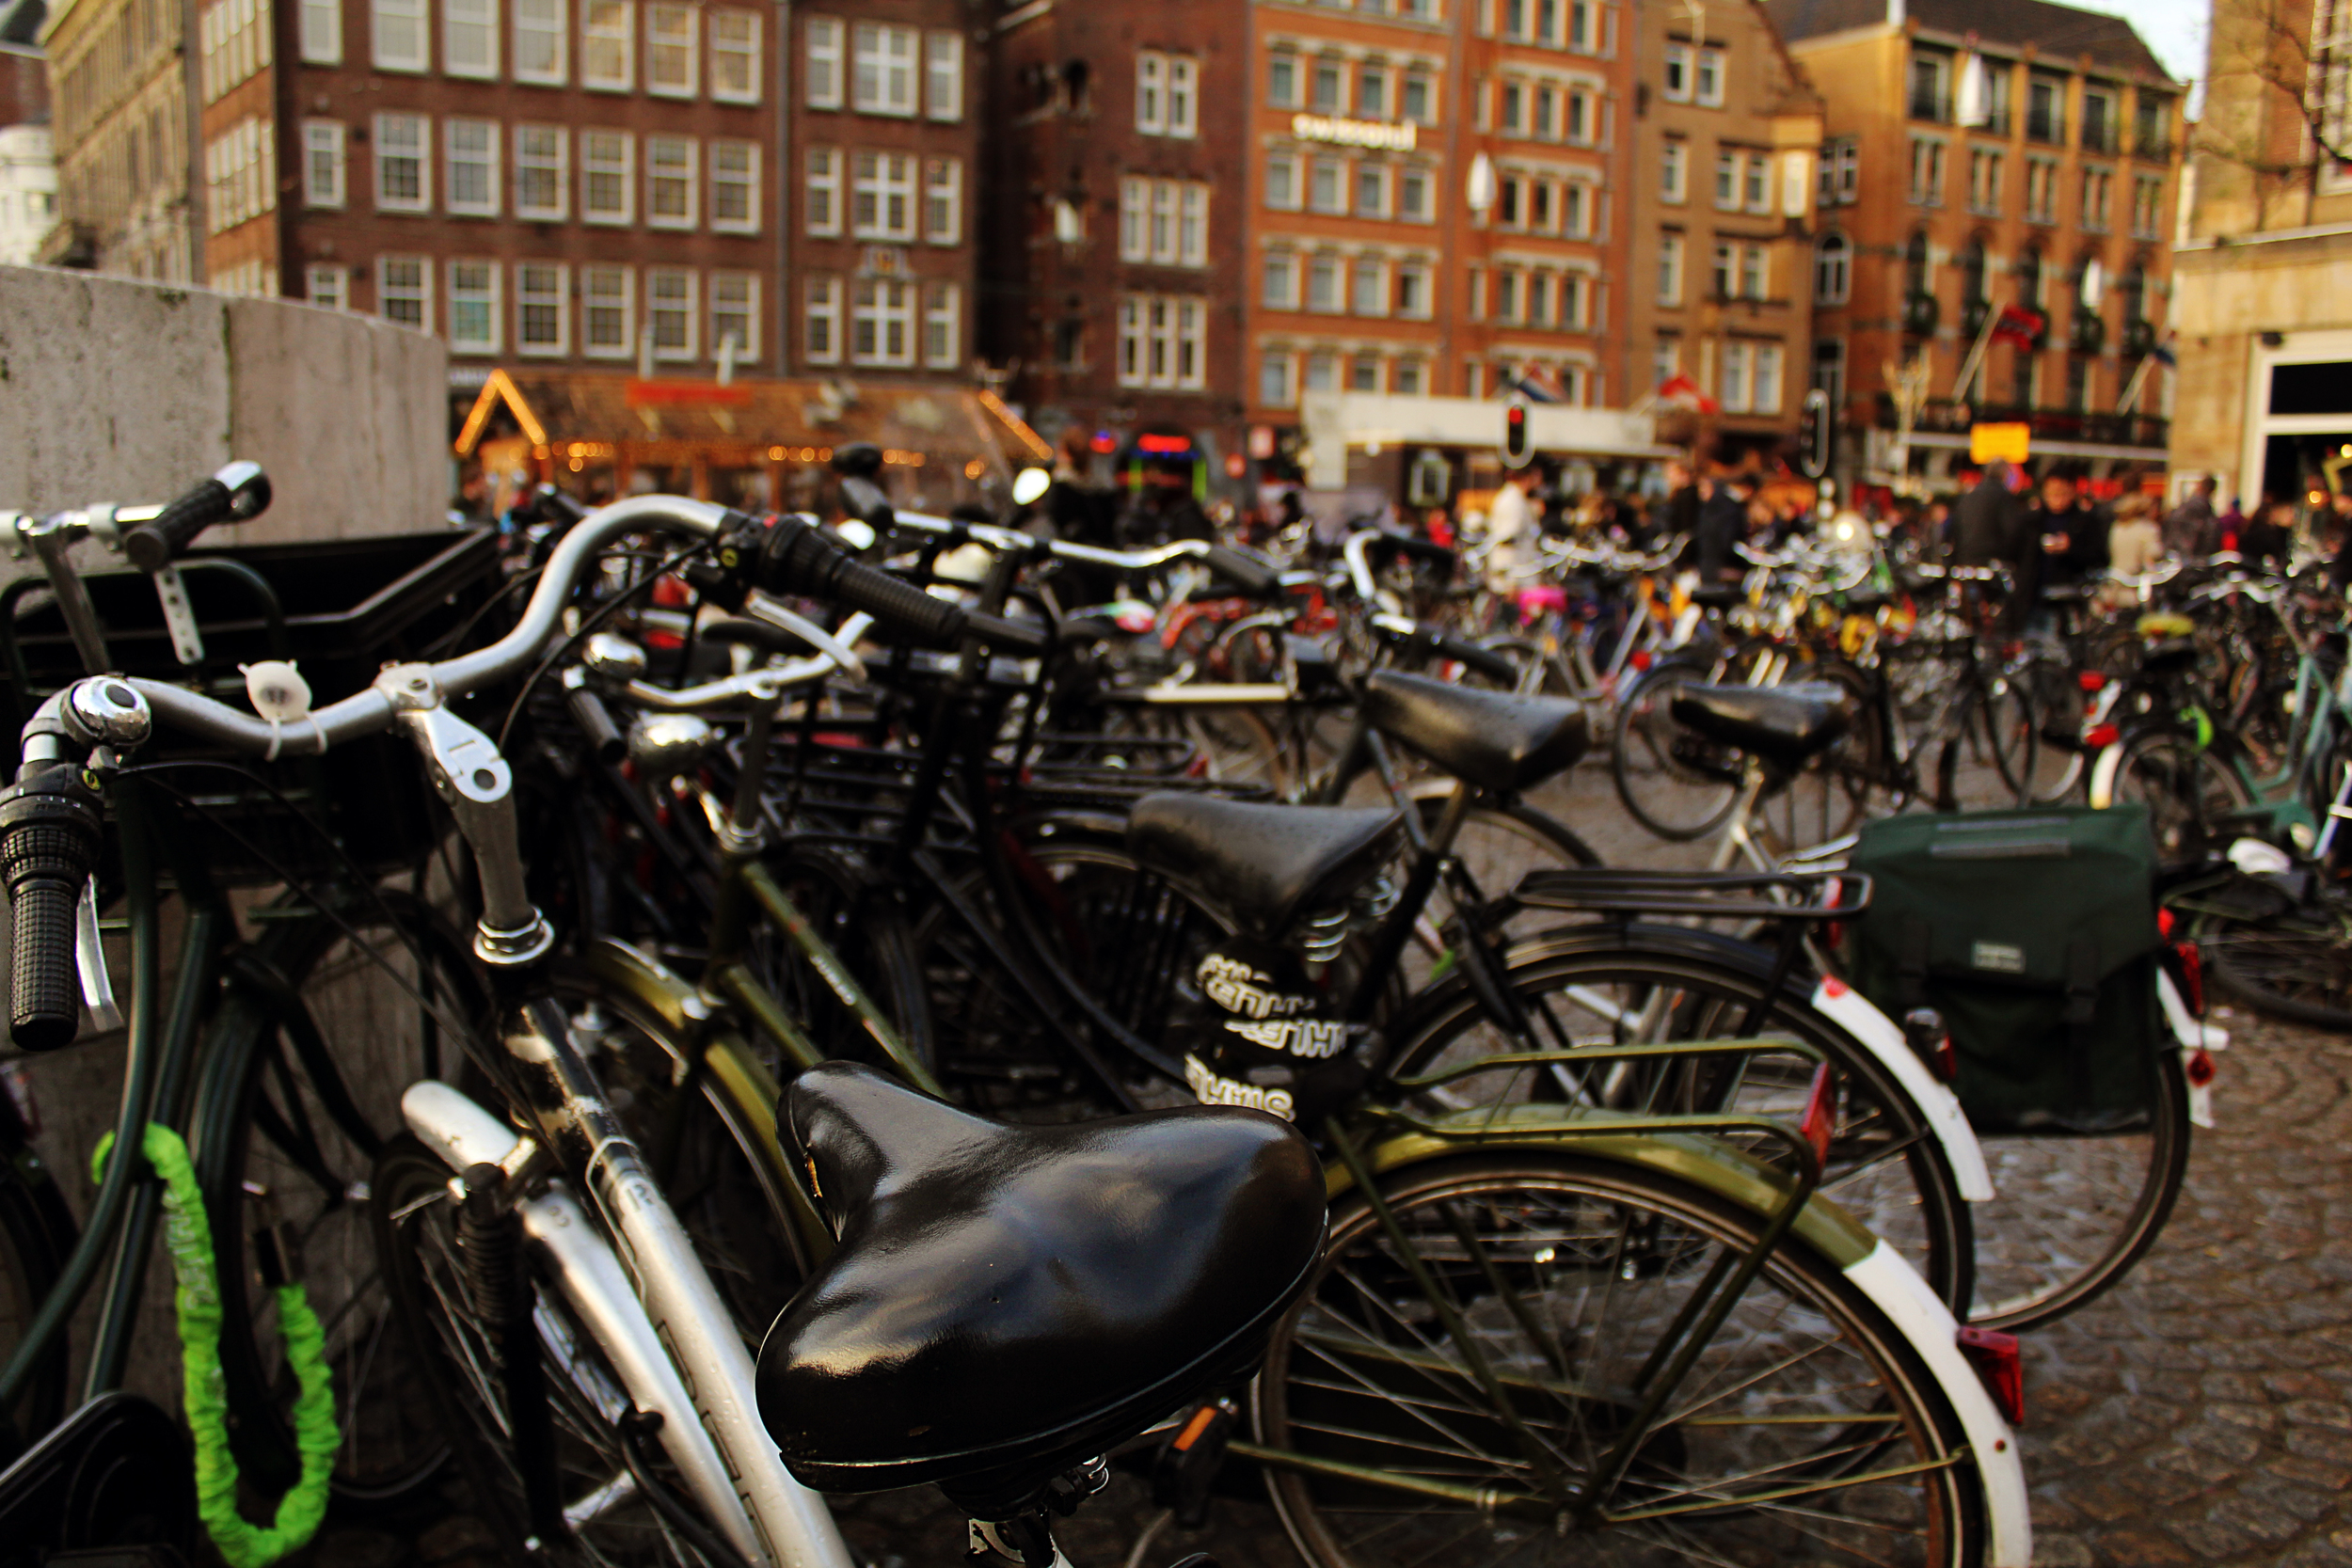 Dutch_bicycles.jpg